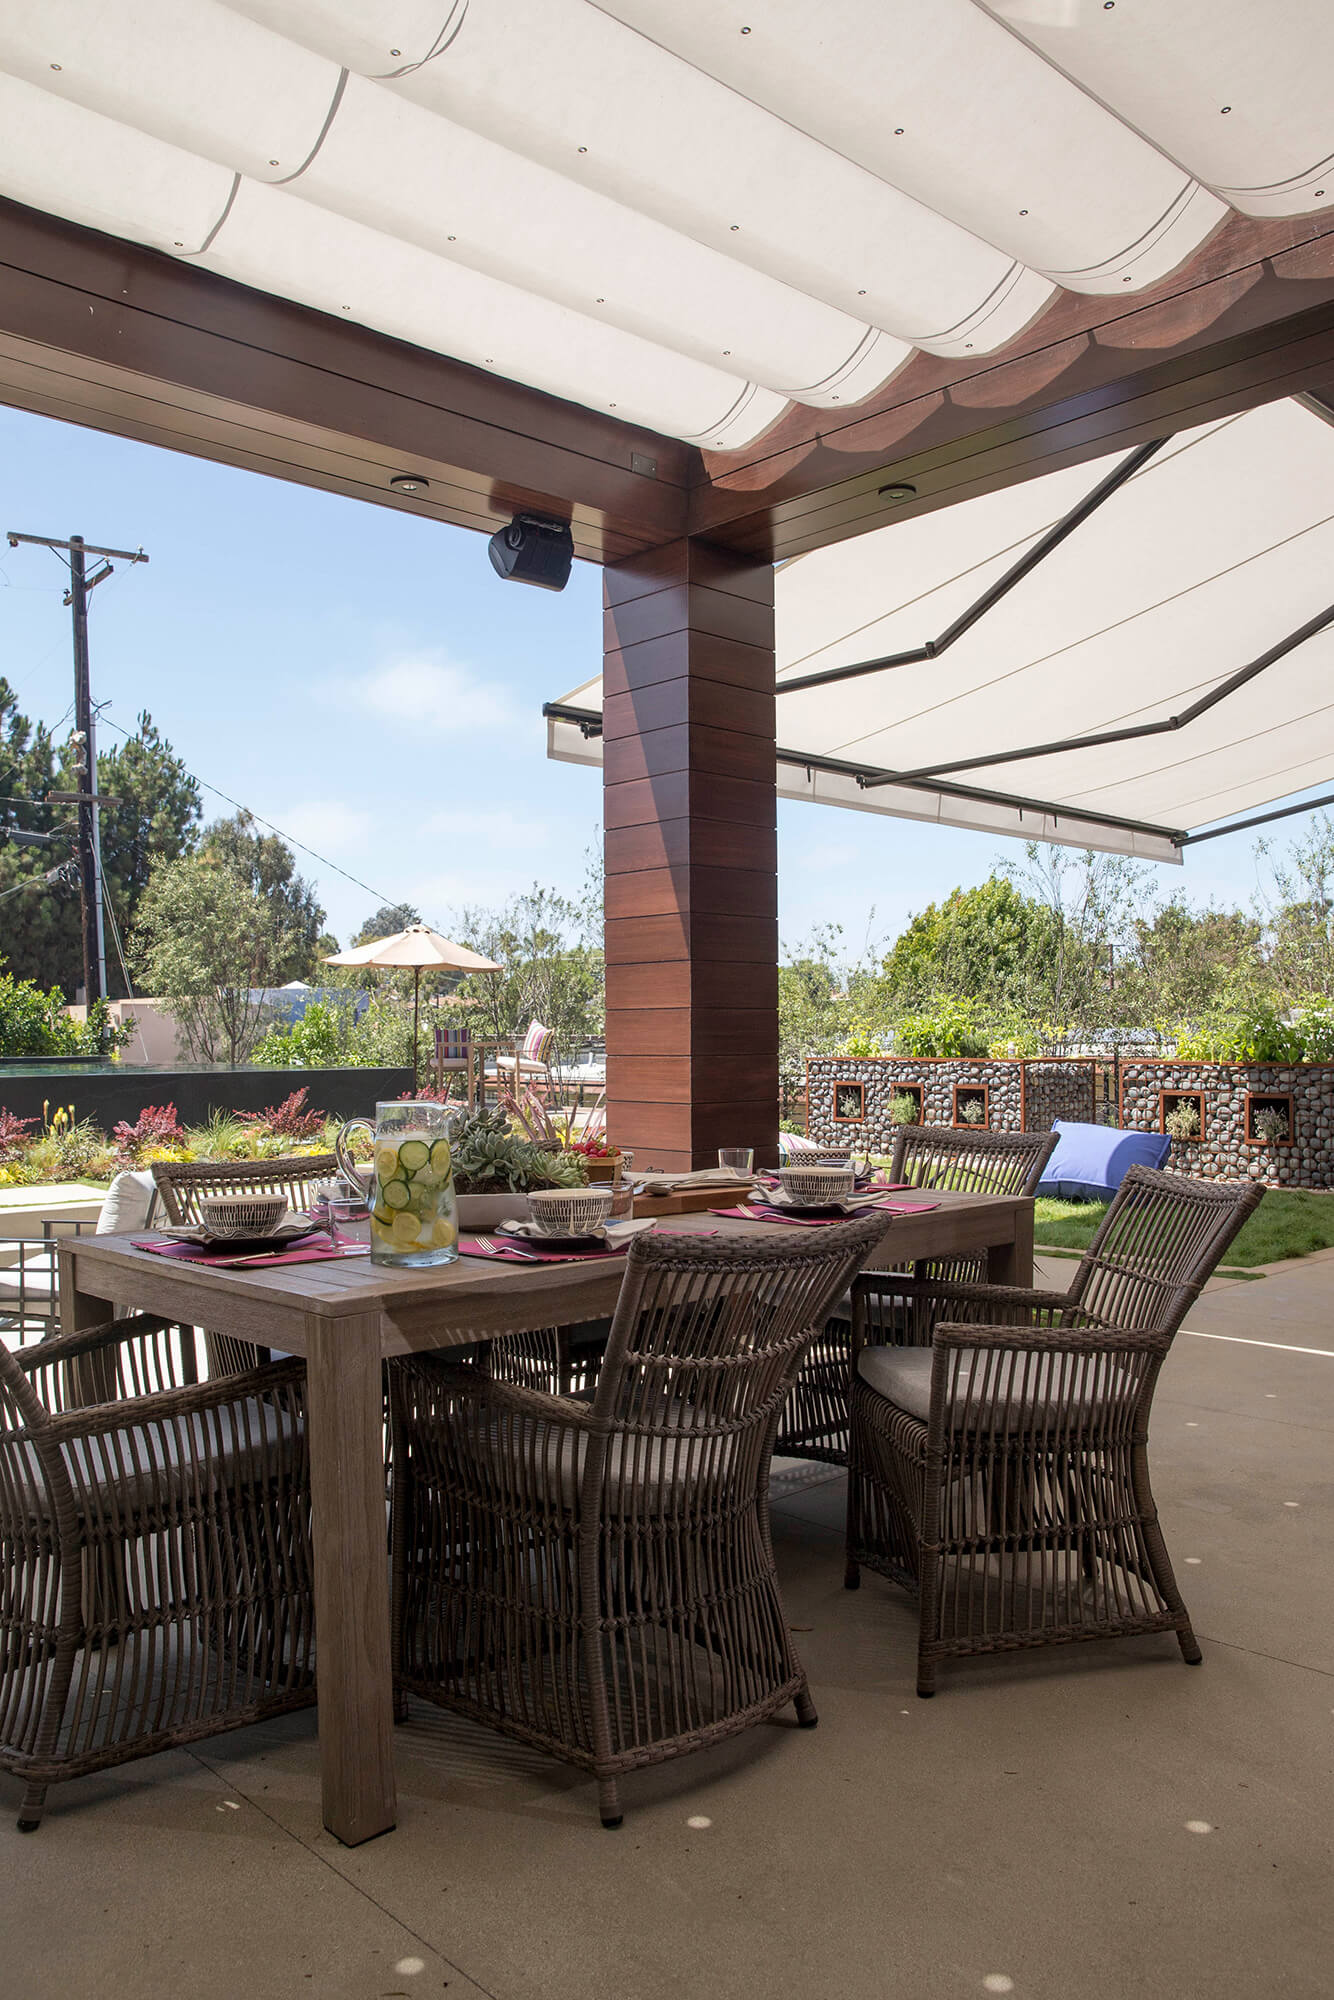 An outdoor patio is covered by a pergola and retractable awning made using silver Sunbrella fabric